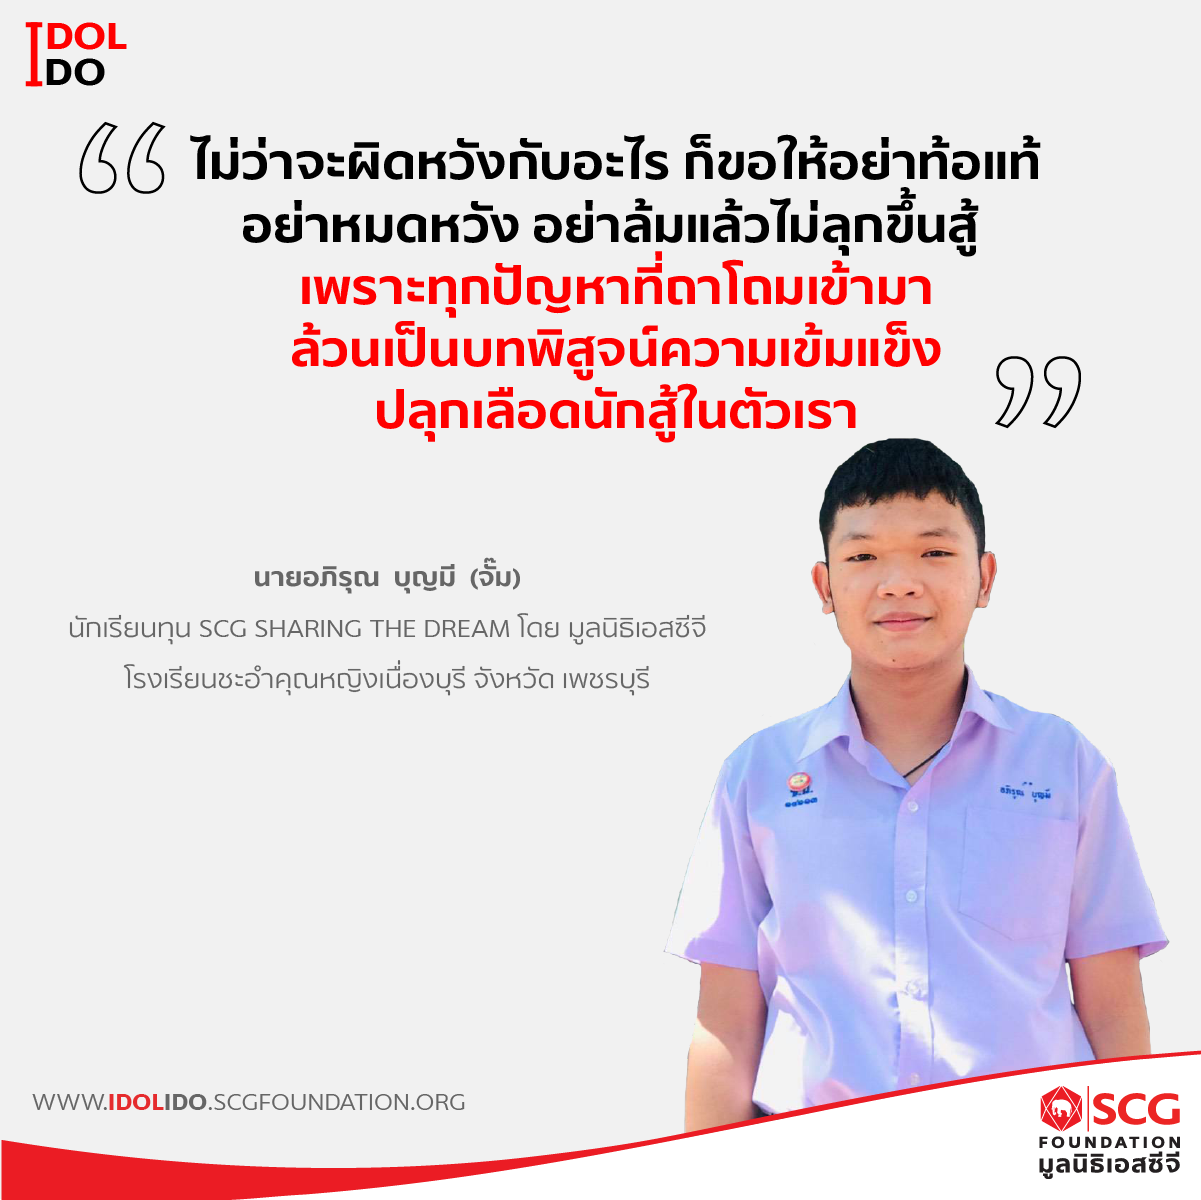 AW_Website_SCGF_Page_Goal_on_จั้ม-02